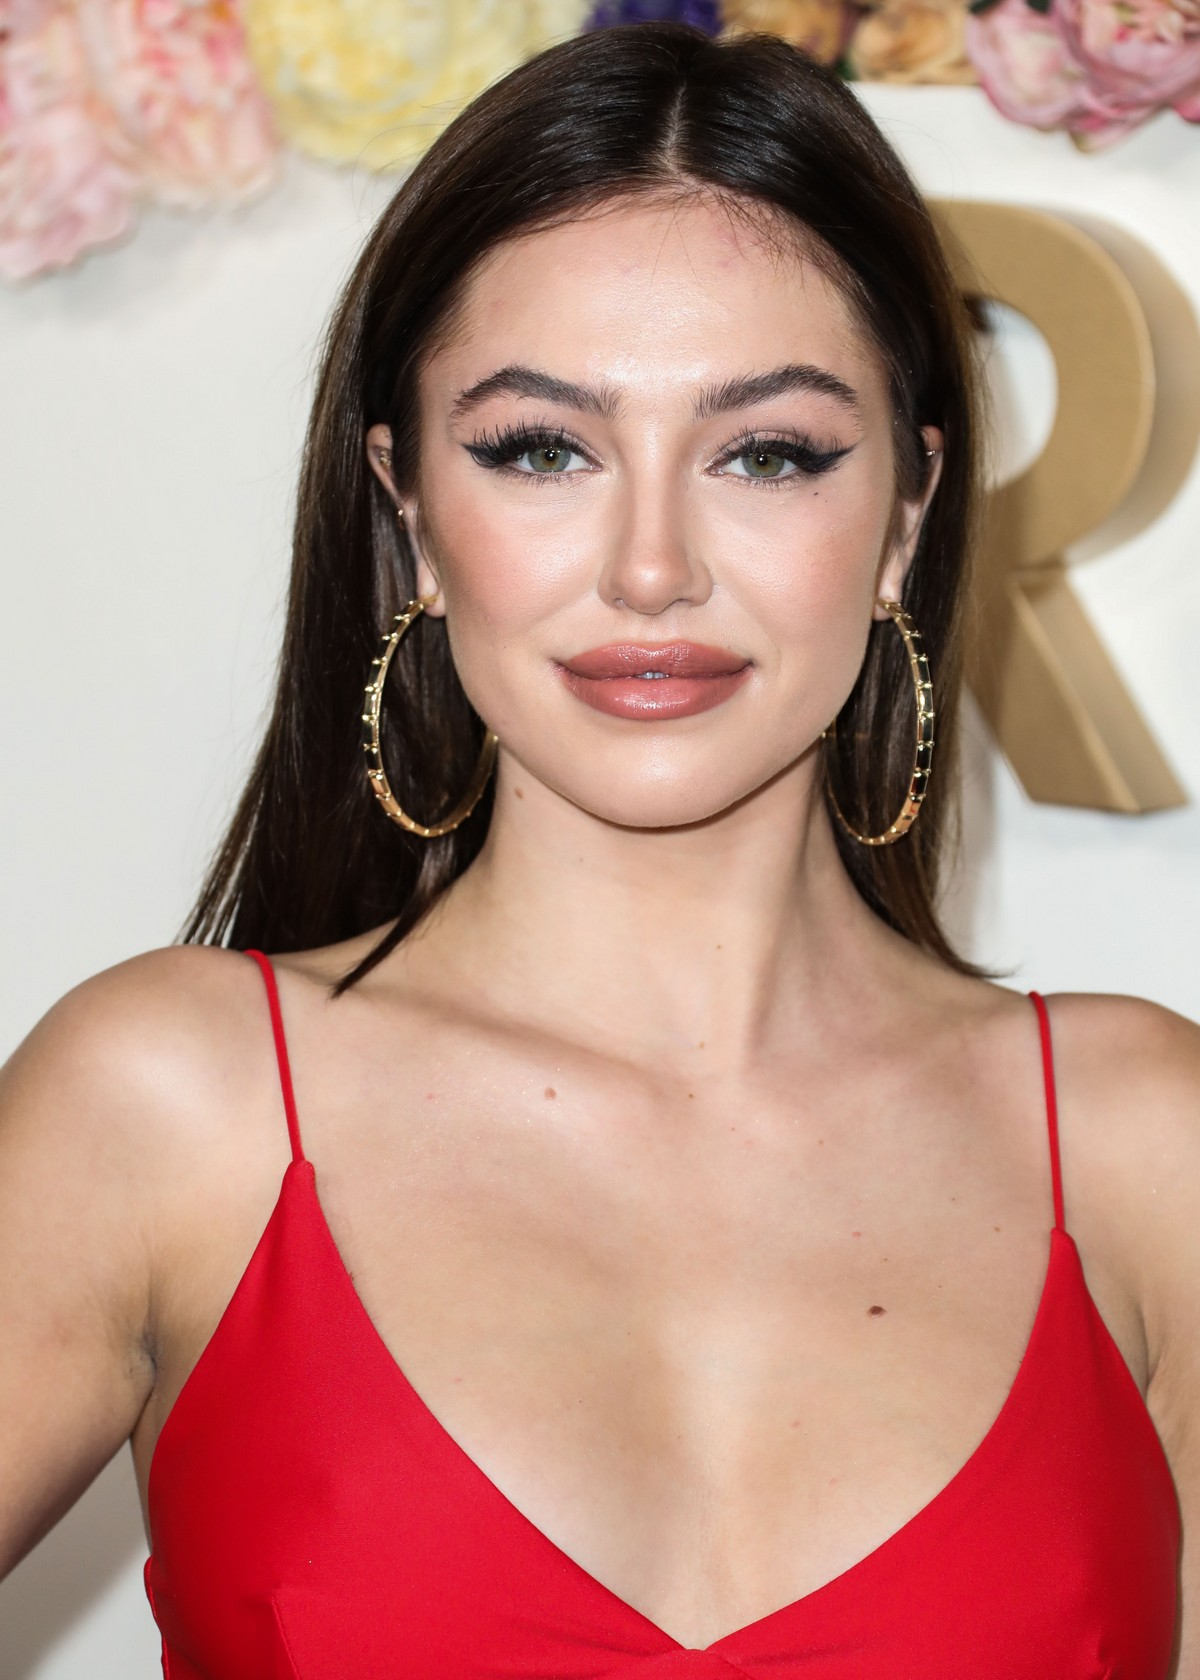 Delilah Belle Hamlin seen in Red Stylish Dress at 3rd Annual #REVOLVE Awards 2019 in Los Angeles 2019/11/15 7